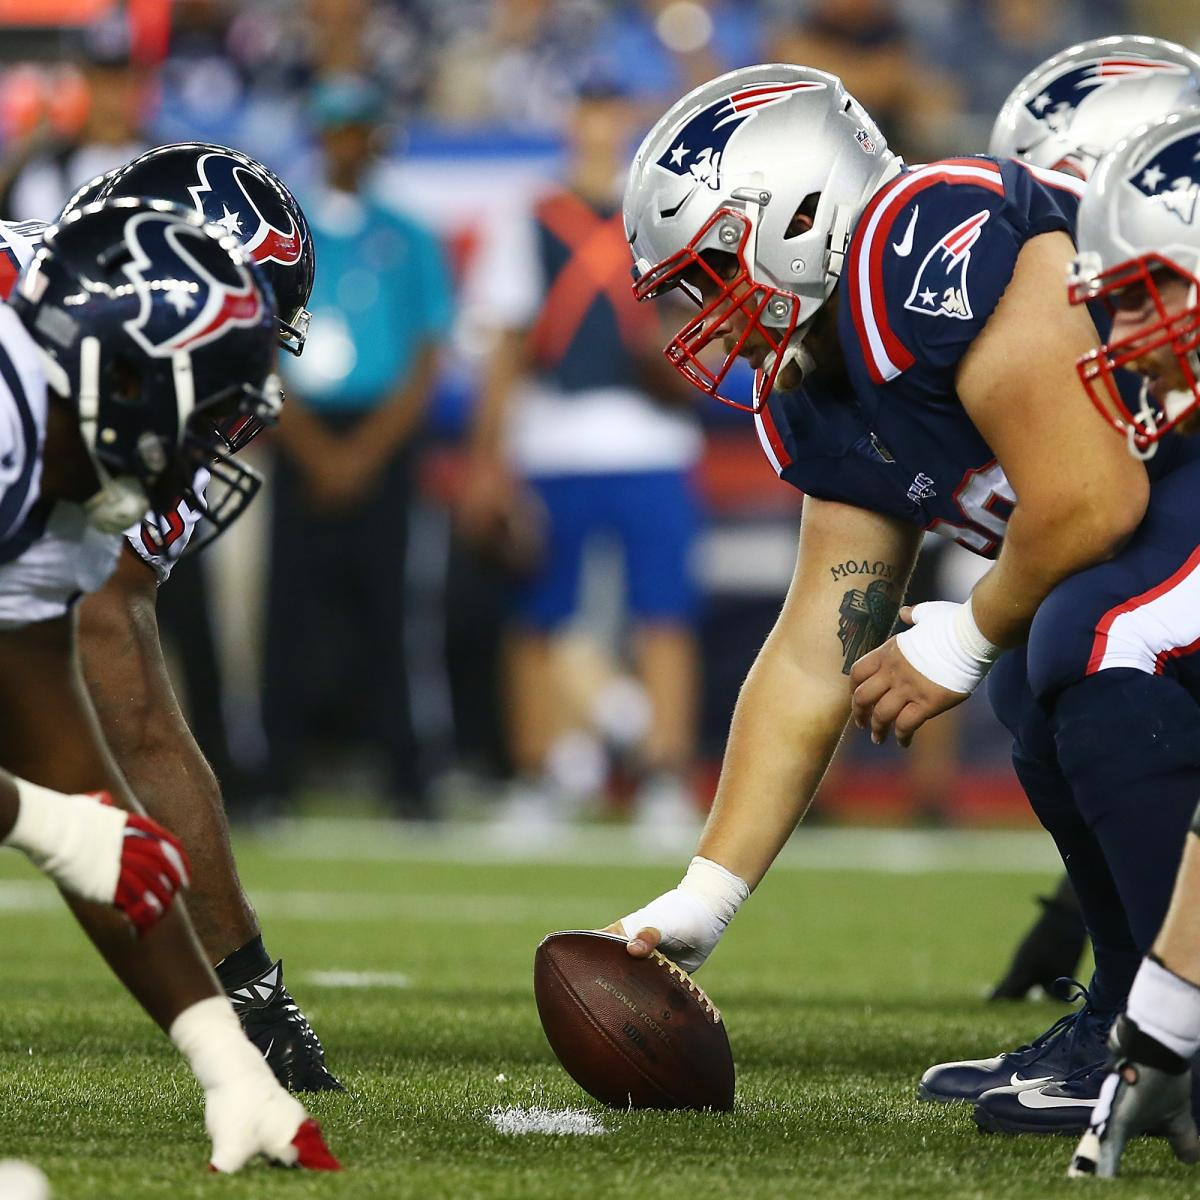 Las vegas betting odds nfl playoffs investec derby betting at home